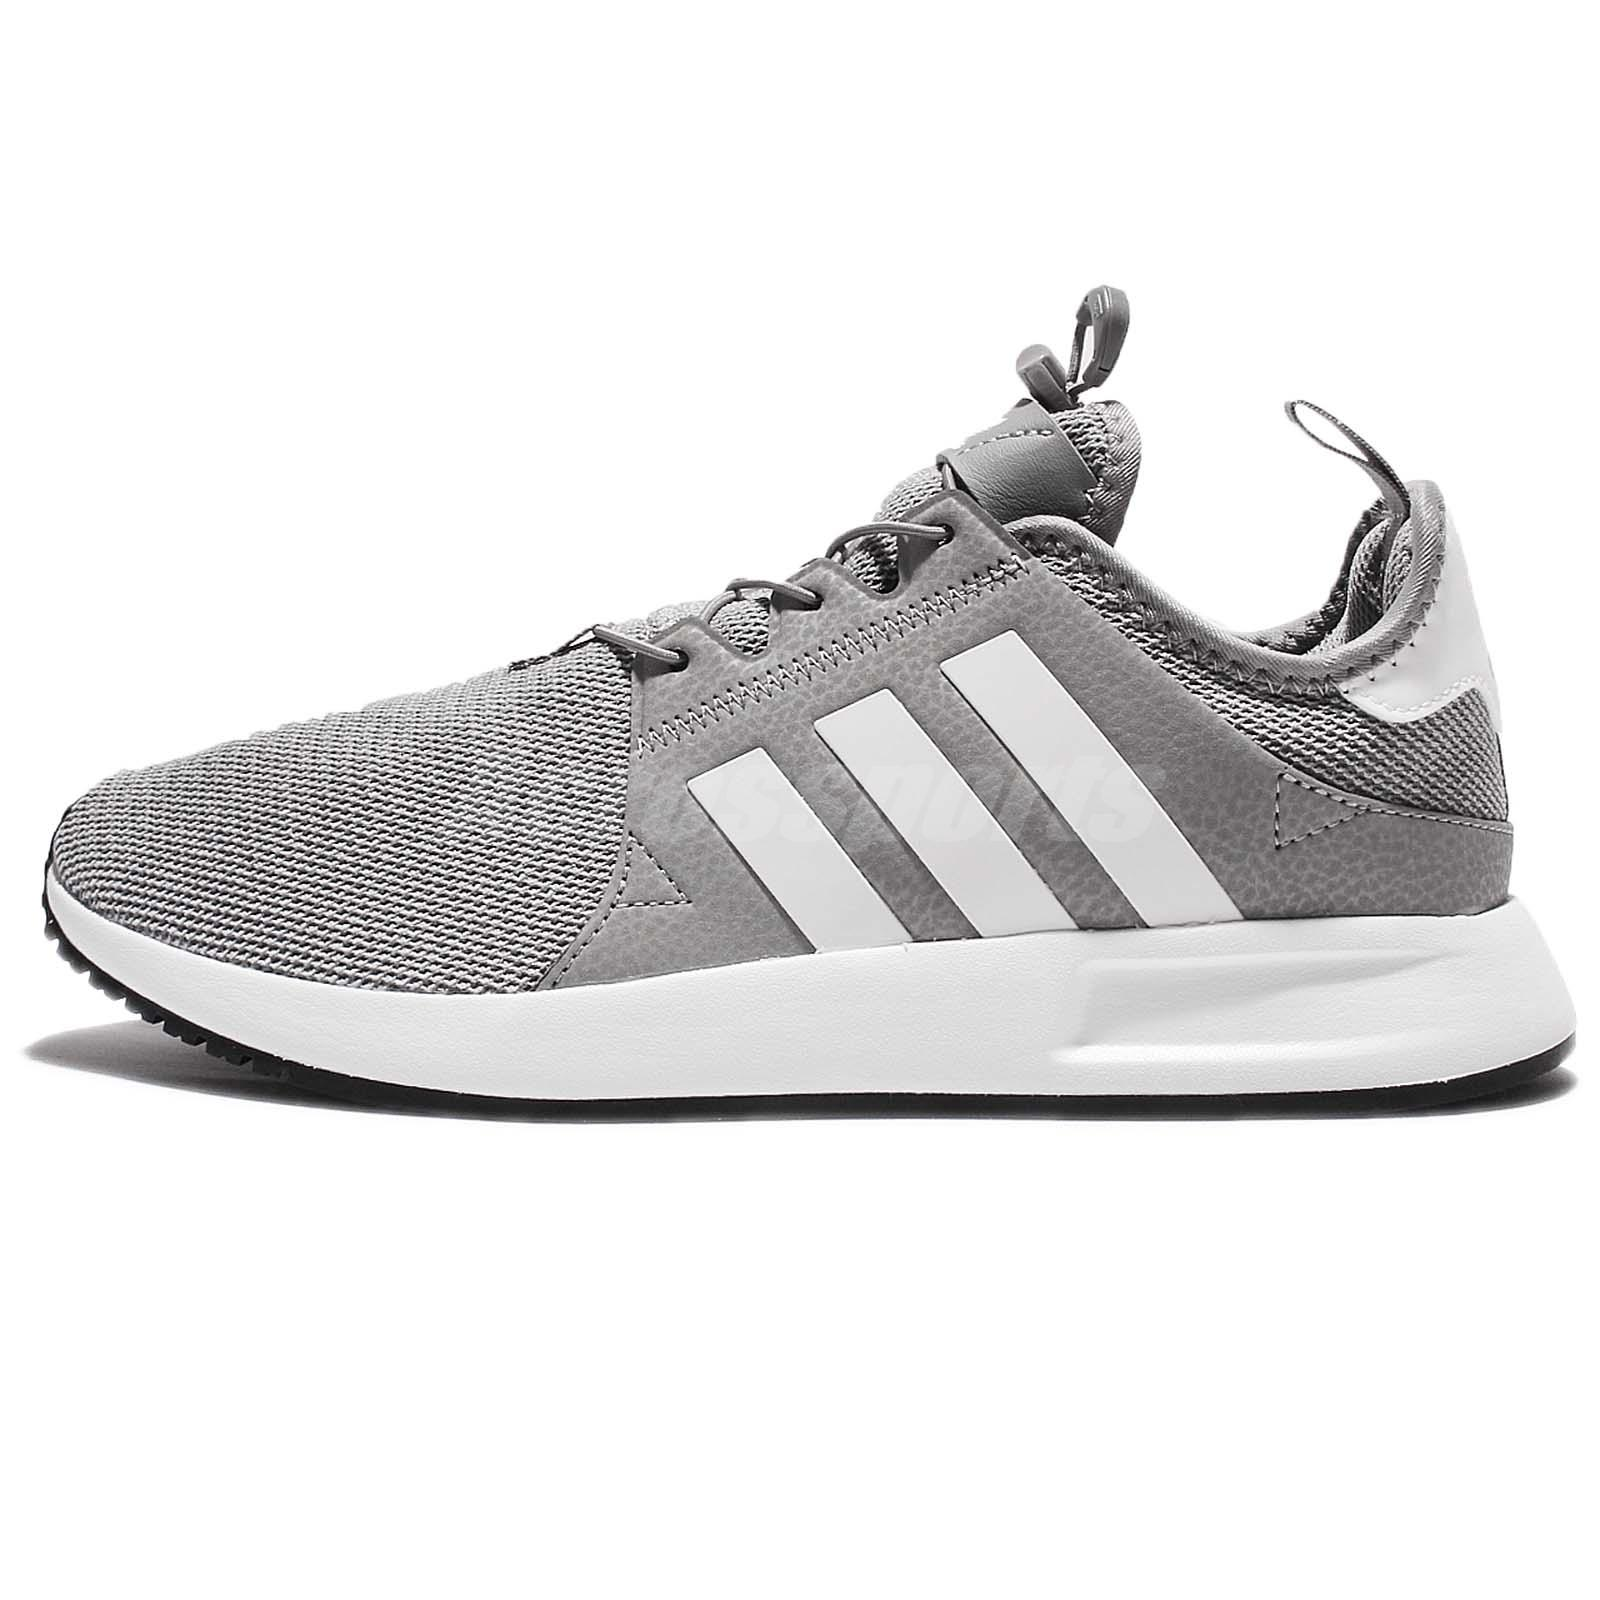 adidas X_PLR Grey White Reflective Men Running Shoes Sneakers Trainers BB1111